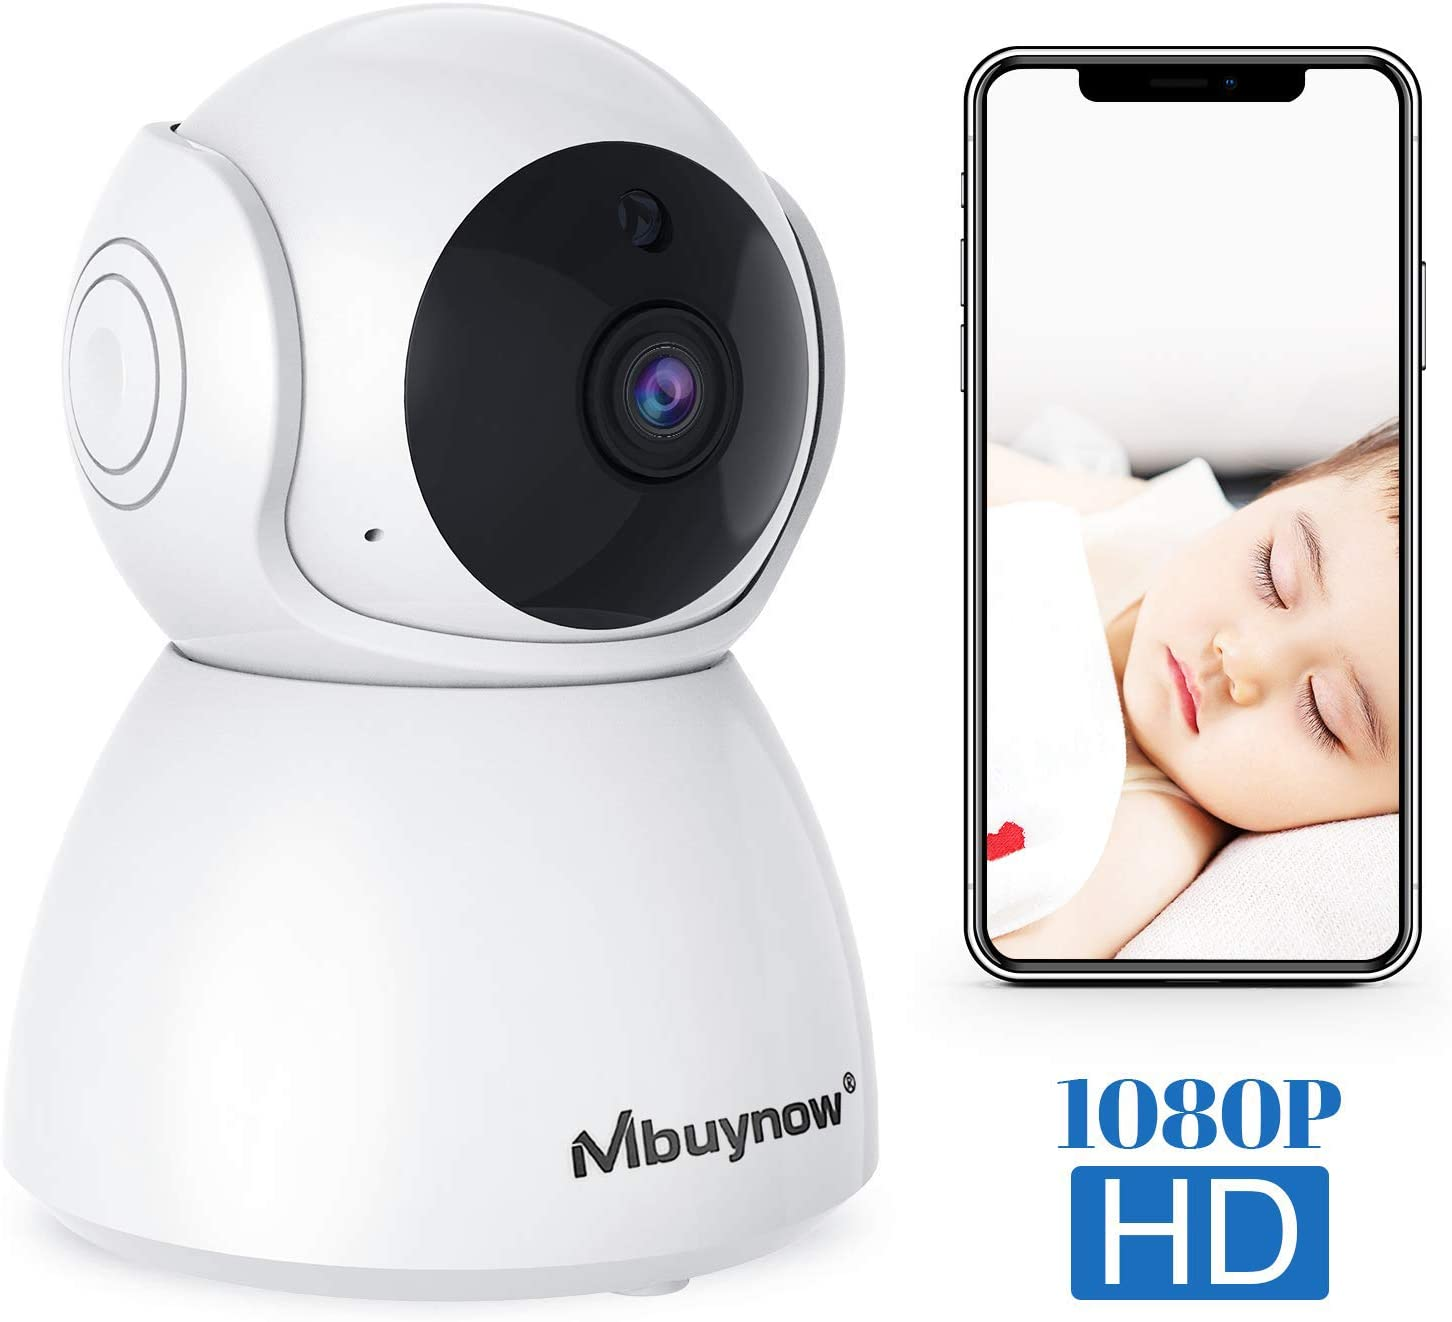 WiFi IP Home Camera, Mbuynow Wireless 1080P Home Indoor Security Surveillance Camera Nanny Cam for Elder Baby Pet Nanny Monitor with PTZ Motion Detection Night Vision 2-Way Audio Cloud-Storage